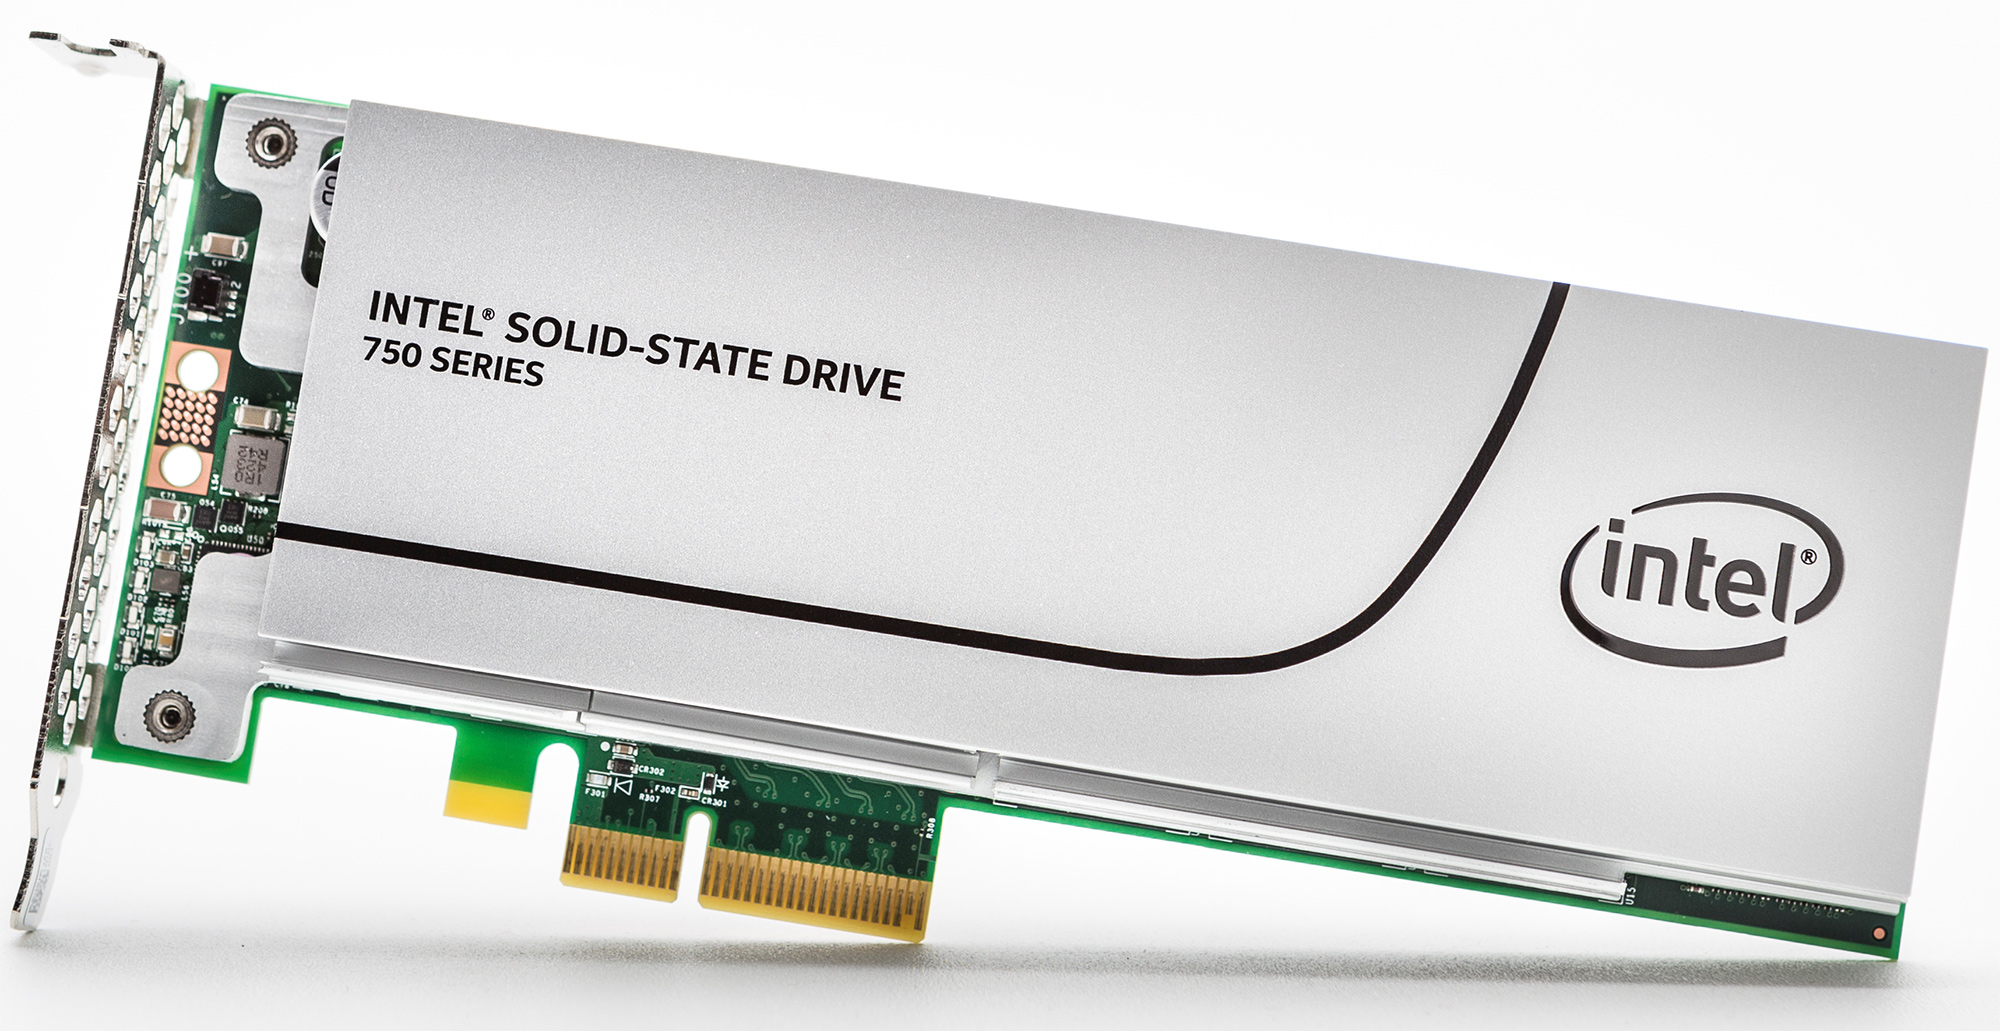 SSD 400GB Intel 750 series 1/2height PCIe 3.0 MLC